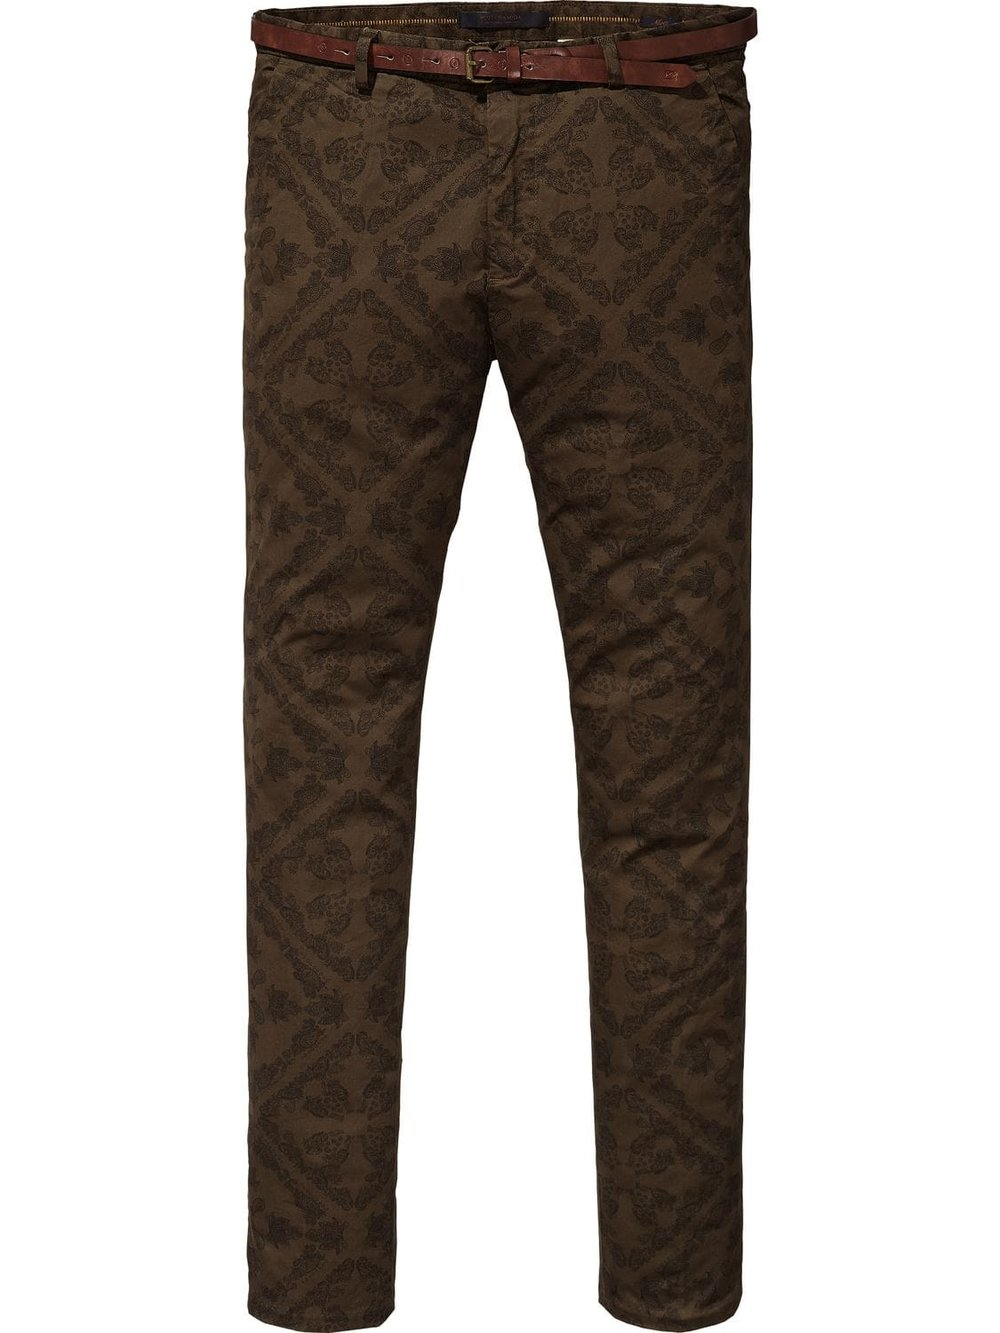 Scotch & Soda Mott Stretch Chinos